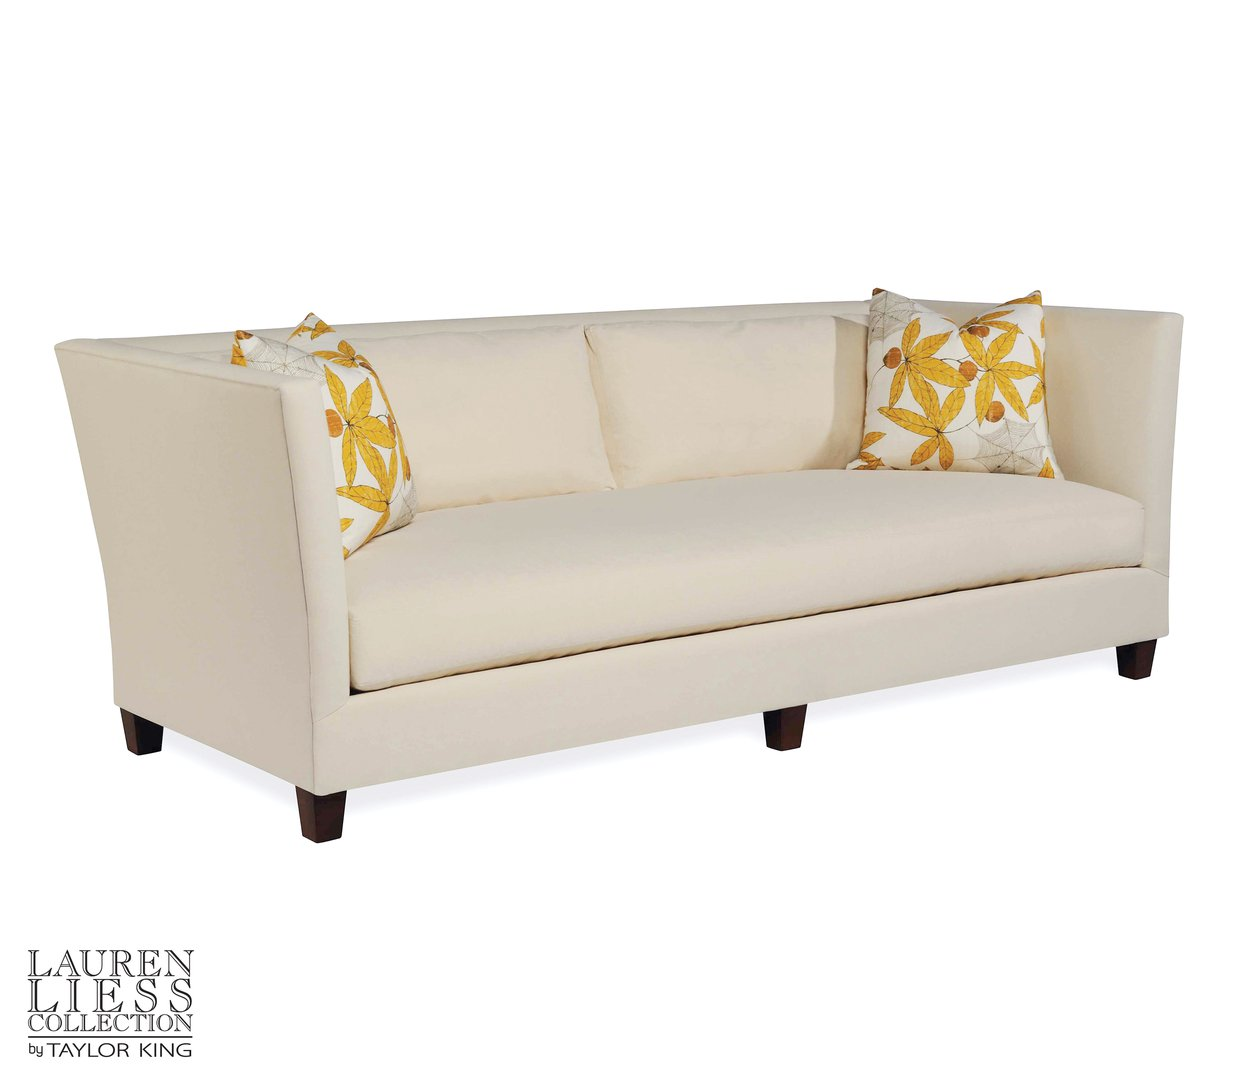 Shelter Sofa Image